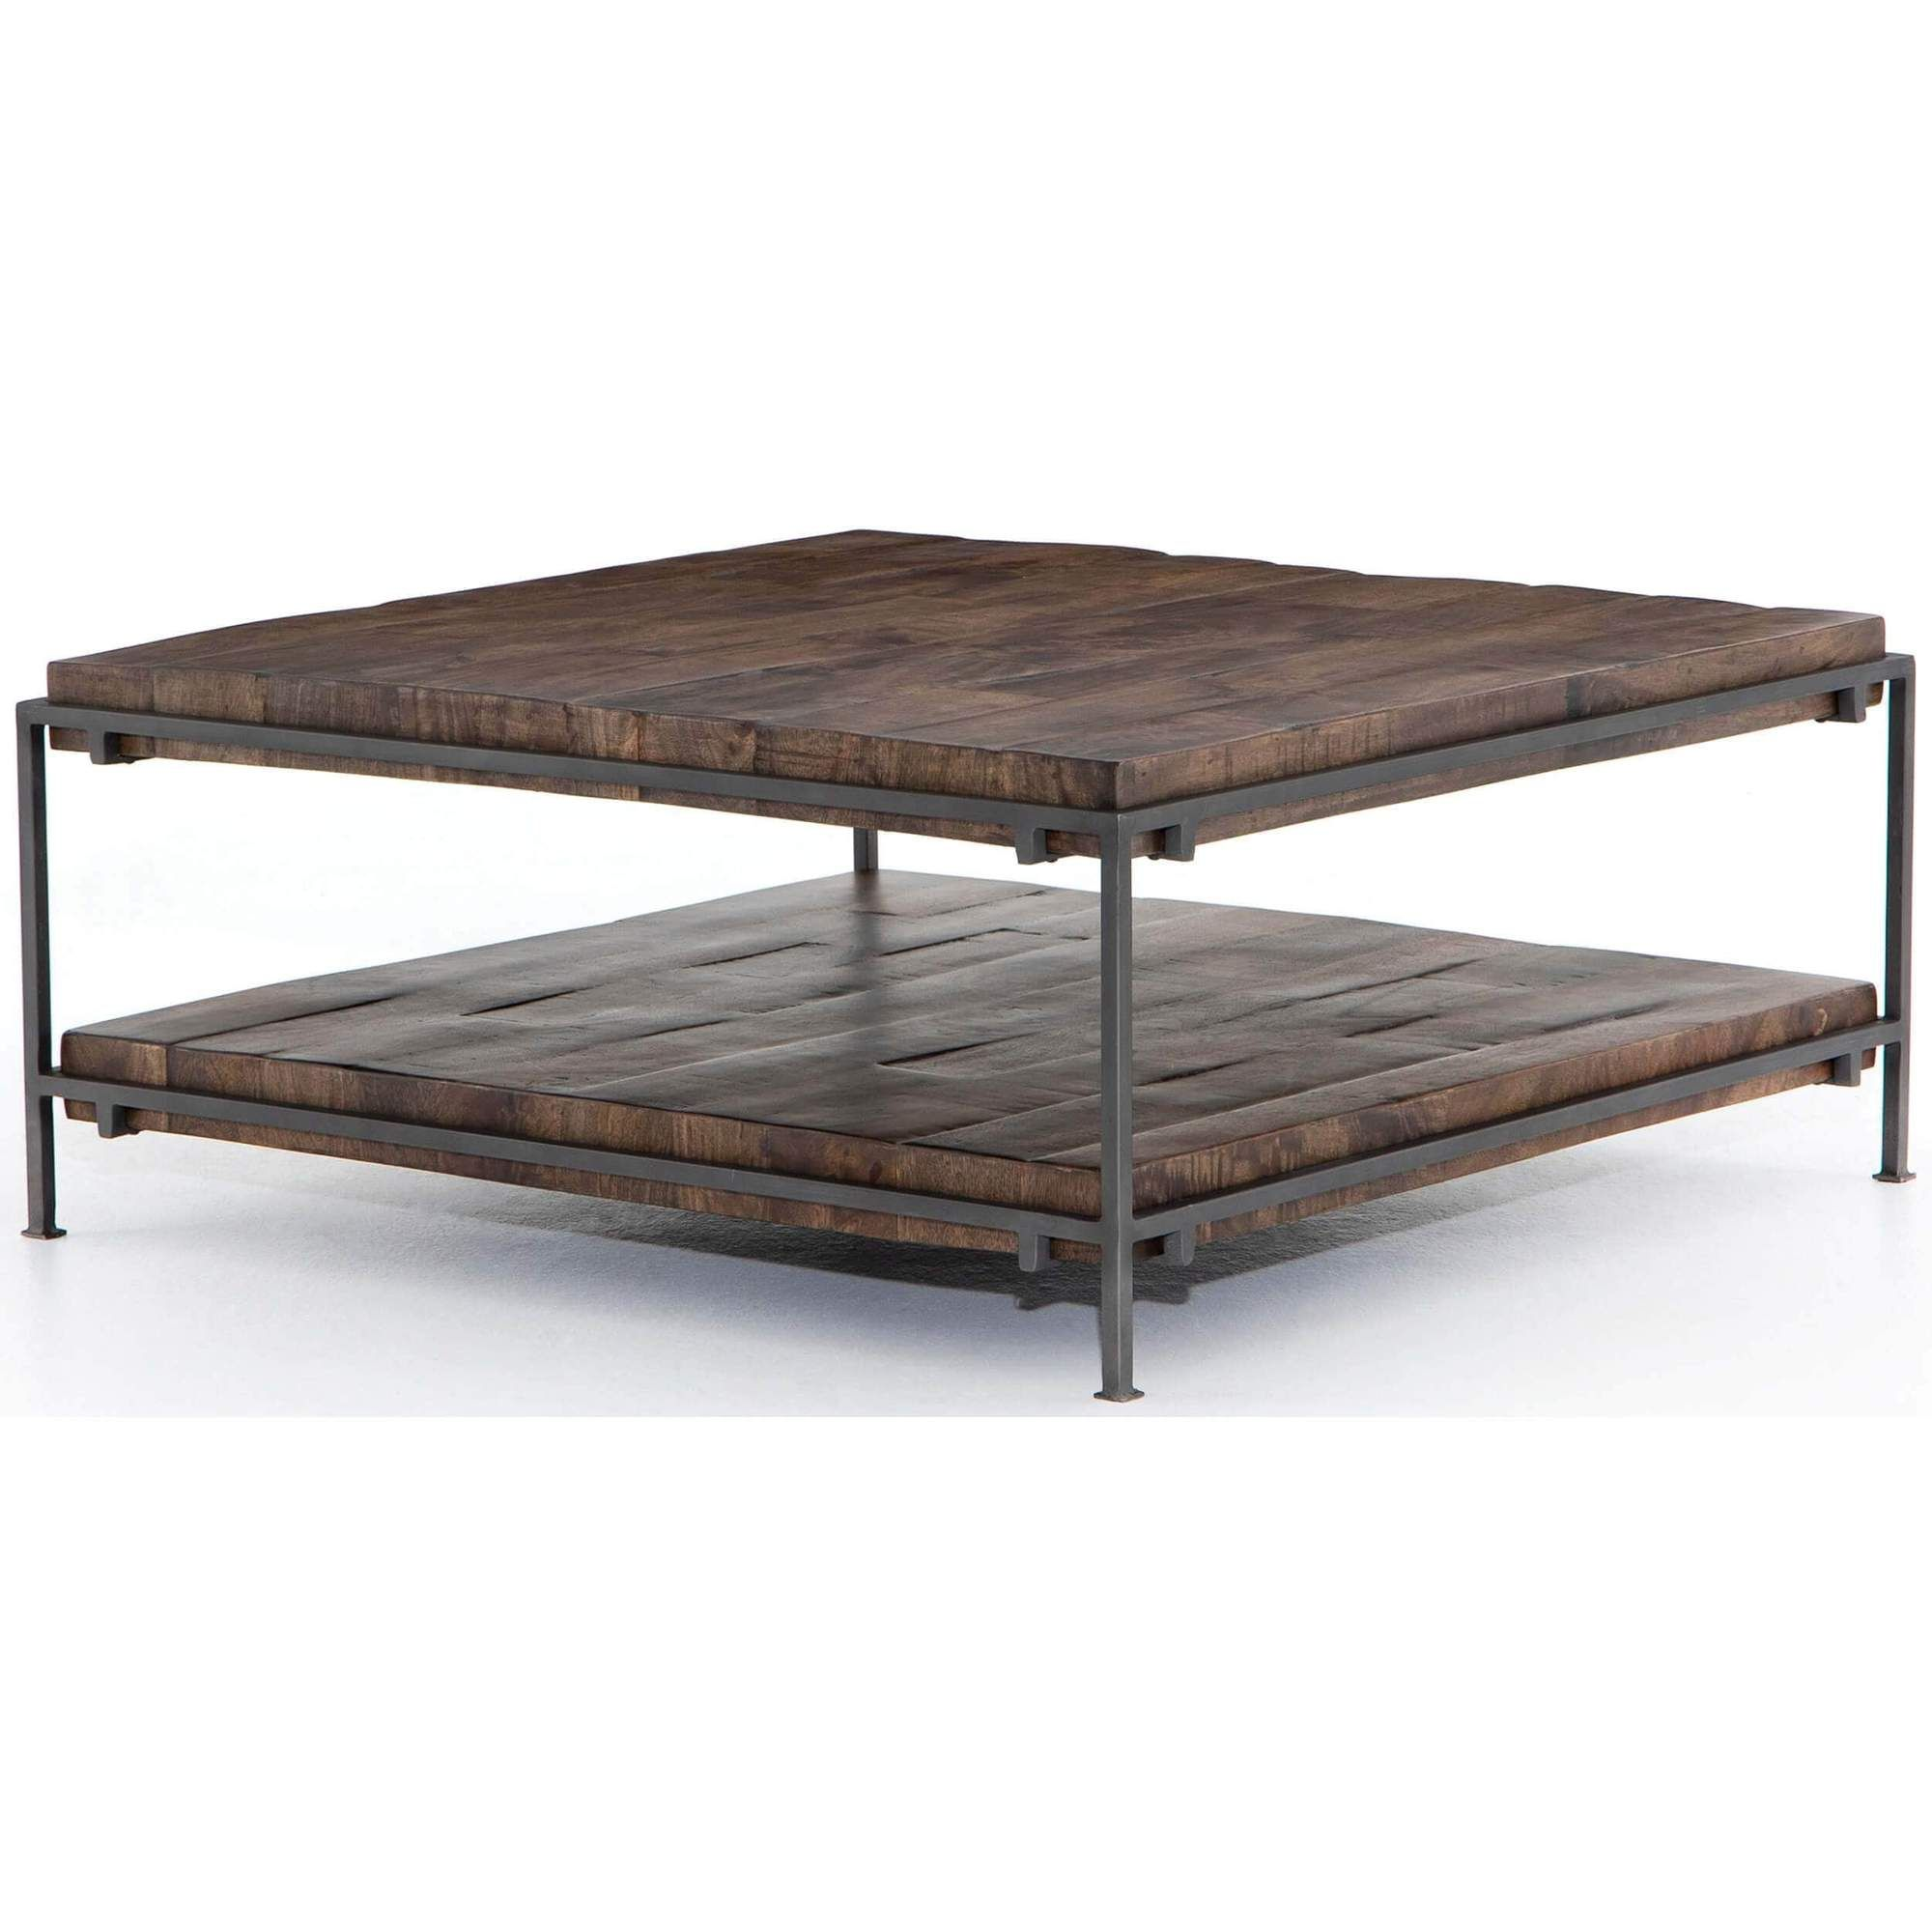 Simien Square Coffee Table Coffee Table Square Coffee Table Wood Coffee Table Rustic [ 2000 x 2000 Pixel ]